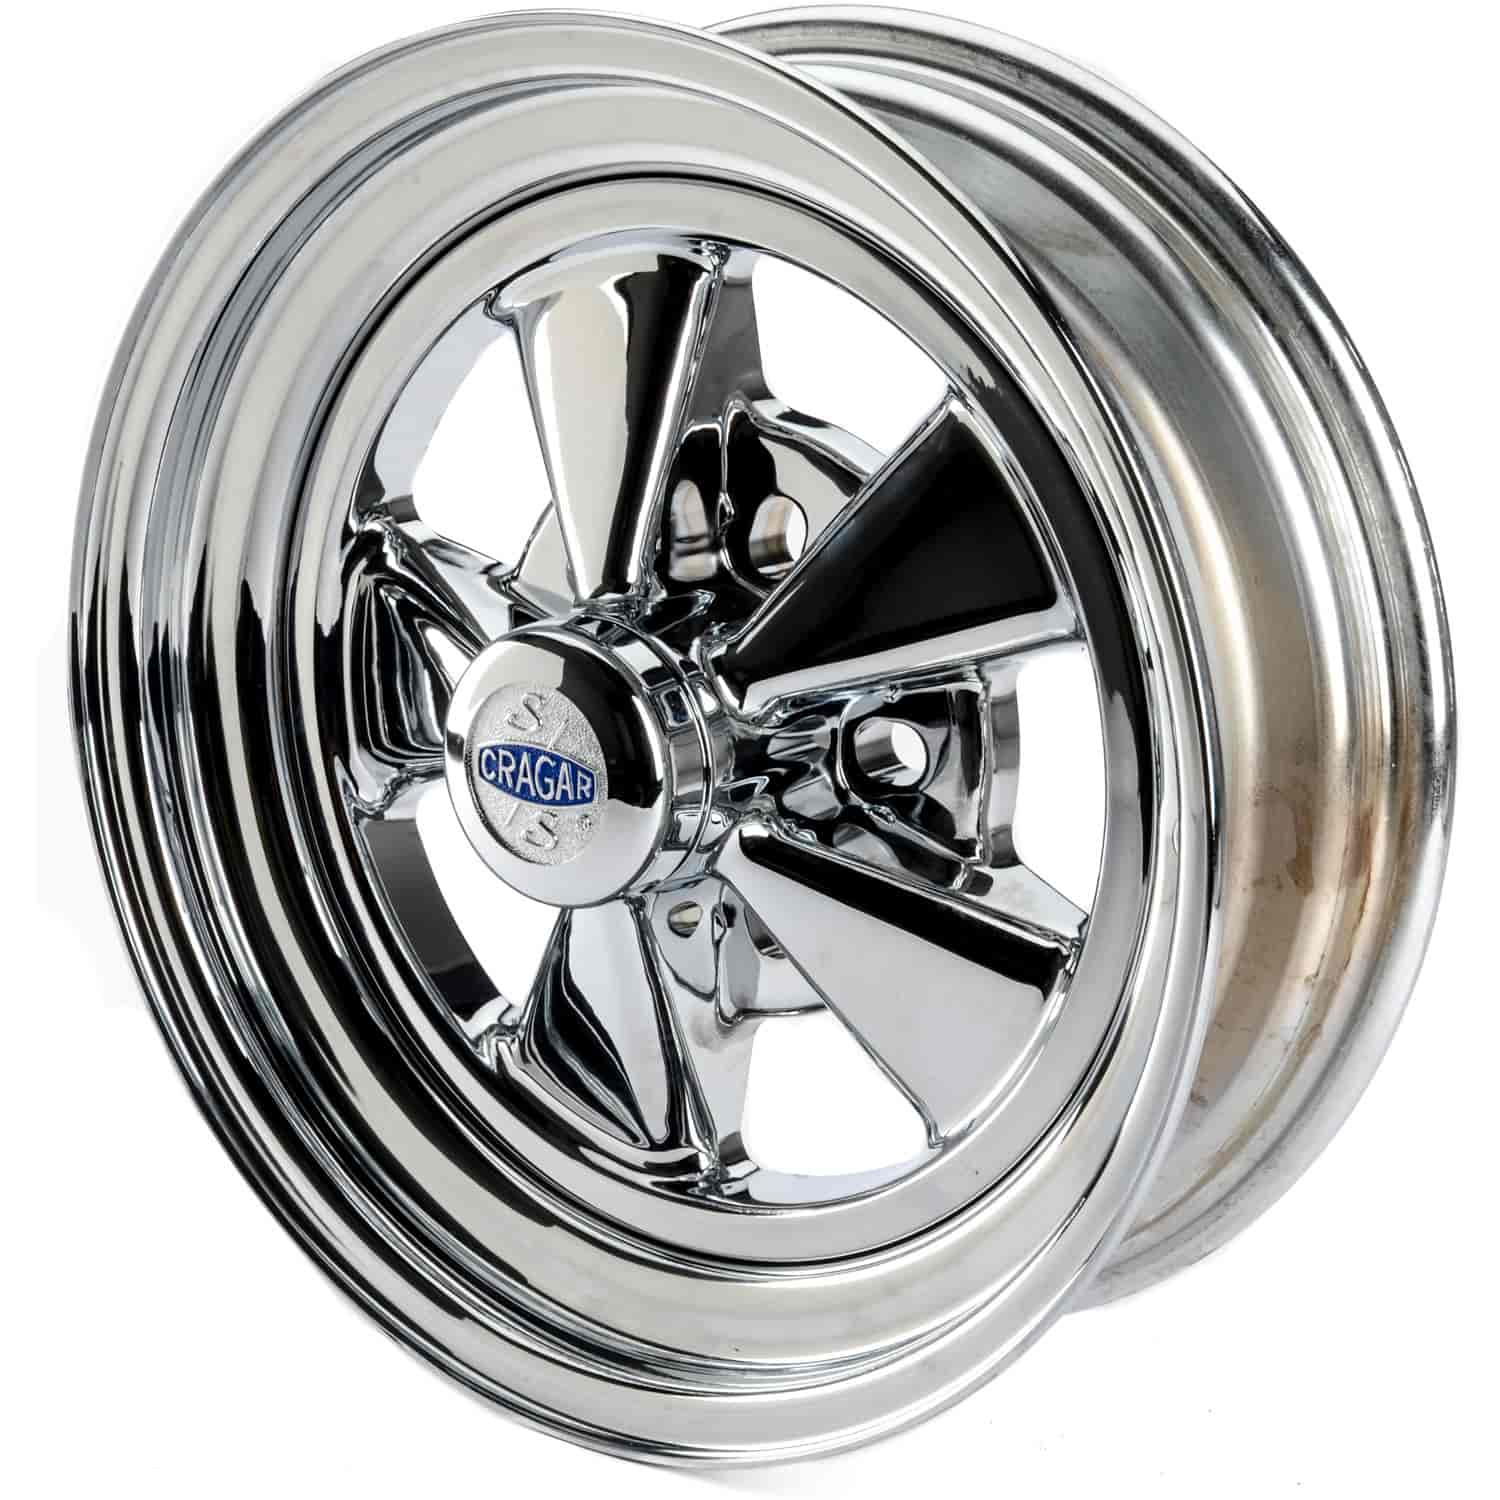 Cragar 08415 - Cragar 08/61 Series S/S Super Sport Wheels